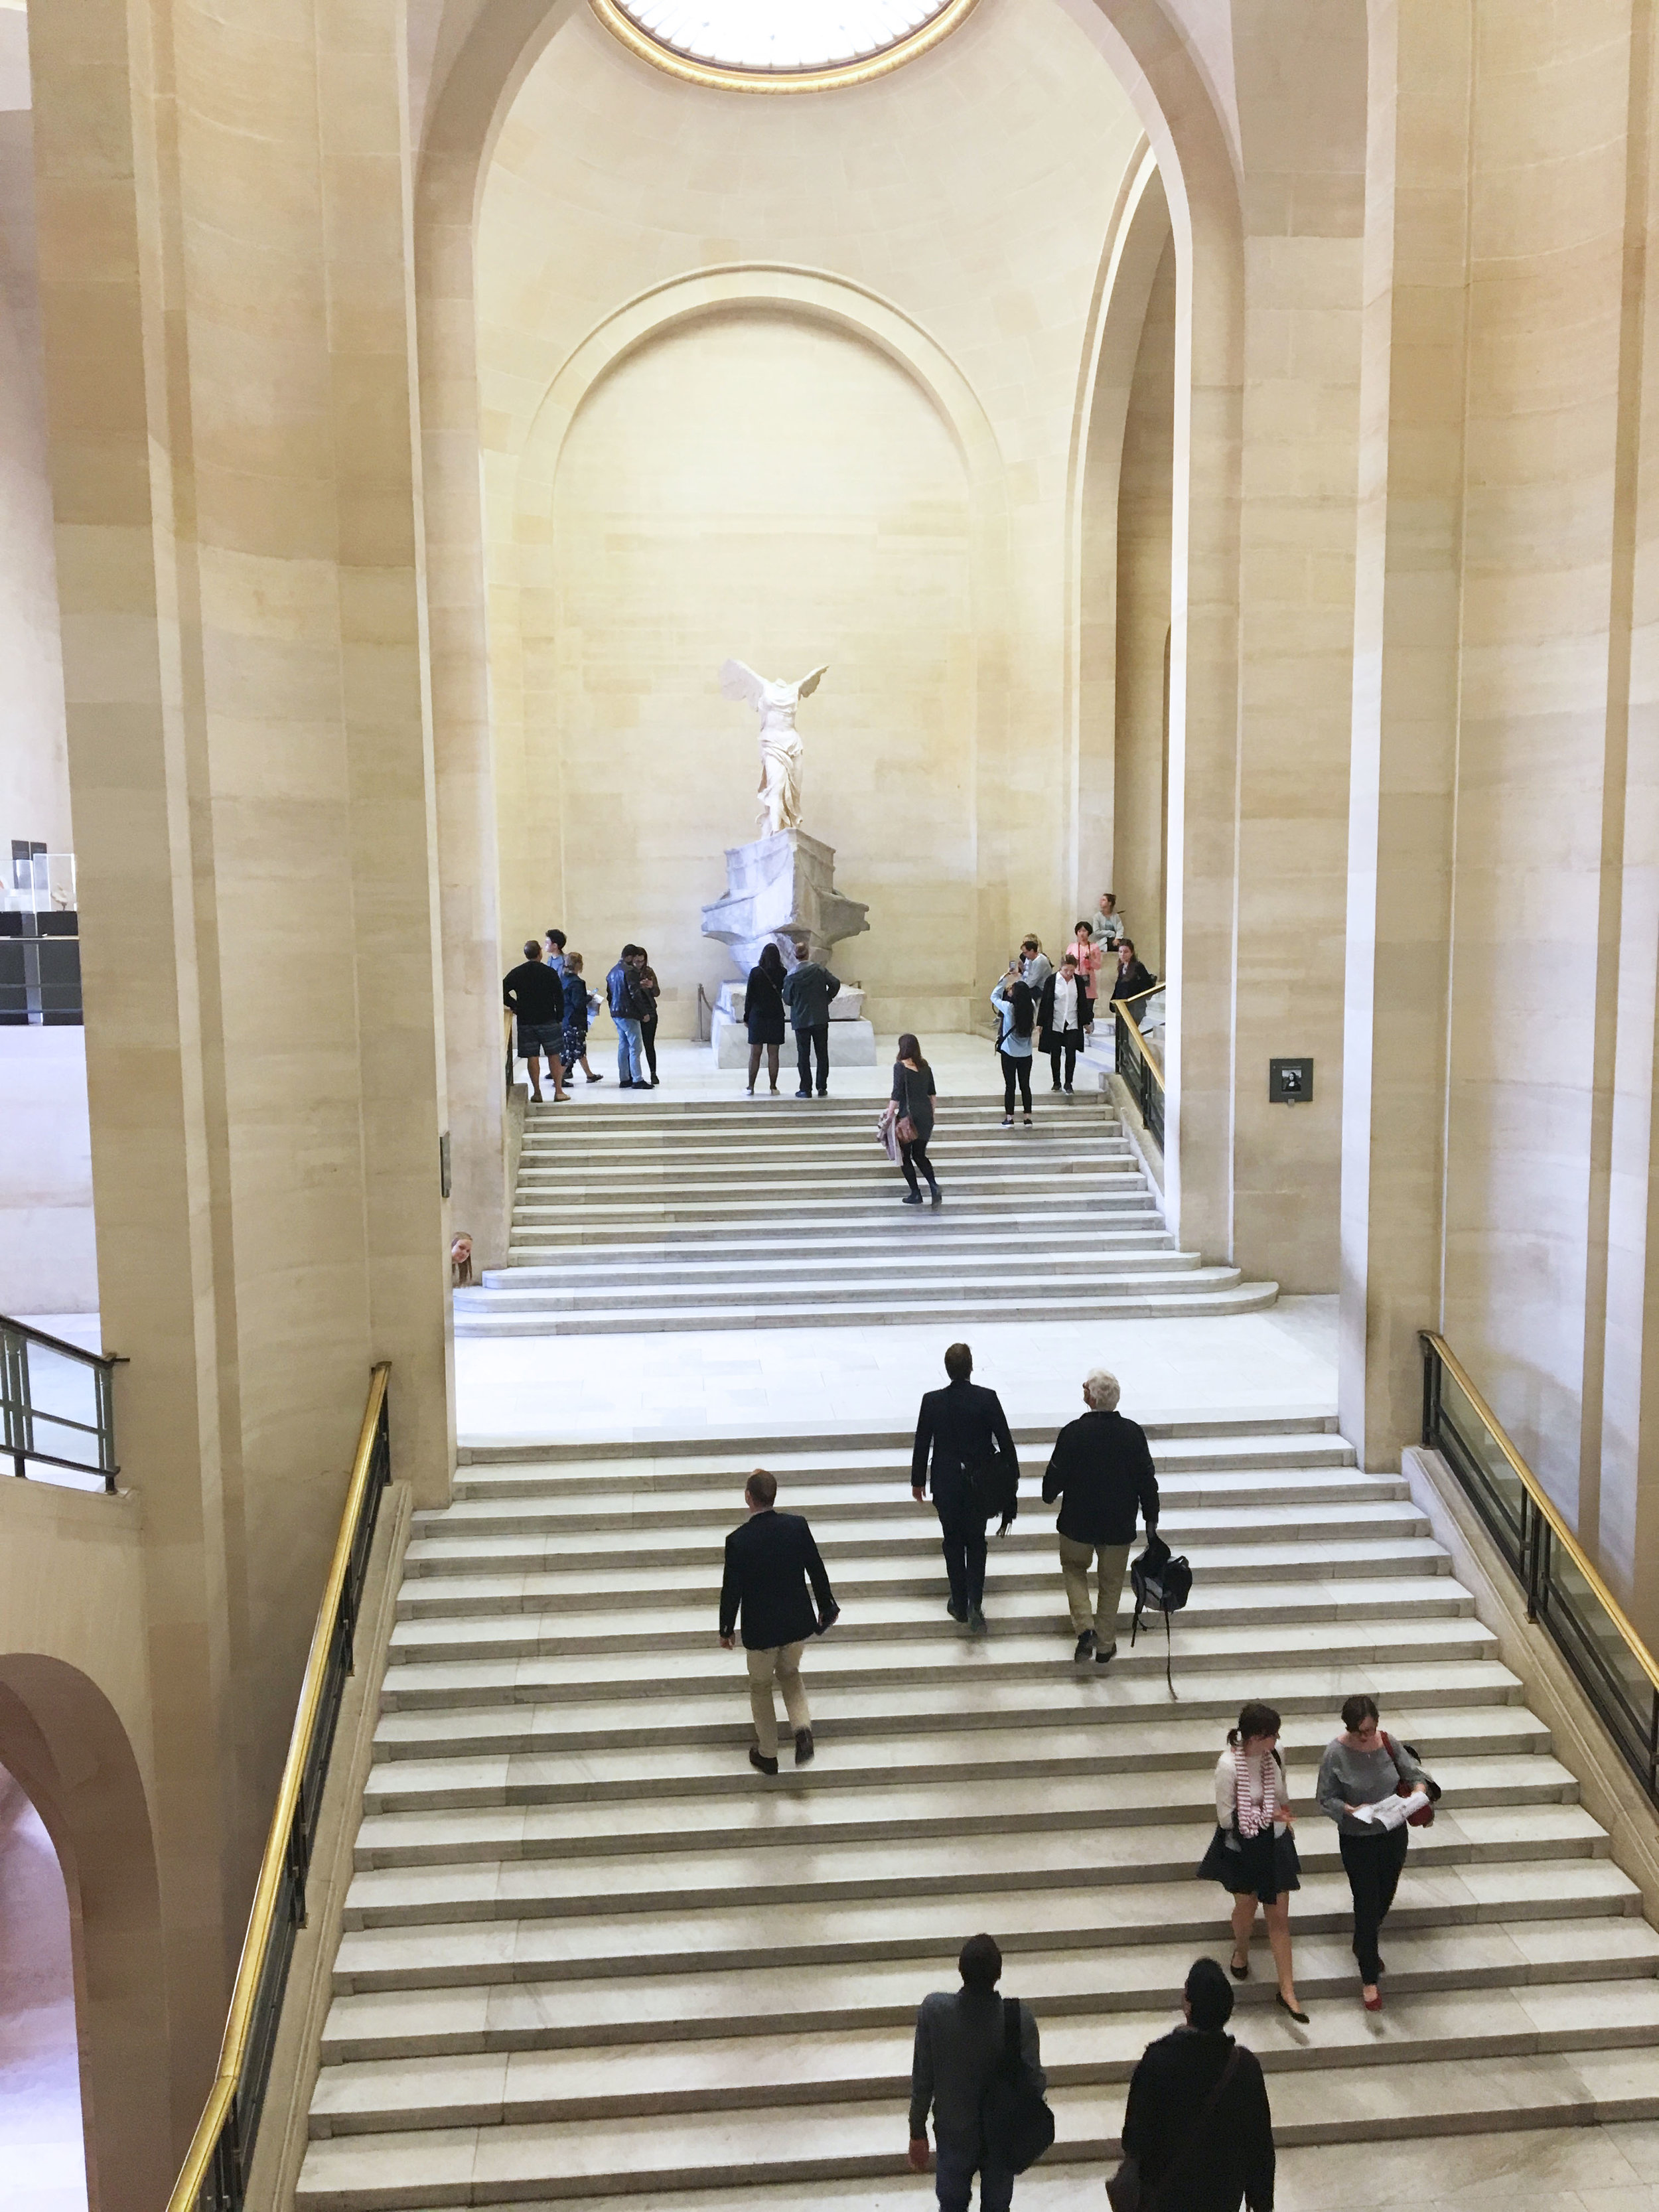 Daru staircase,  Winged Victory of Samothrace  and me (if you can find me).